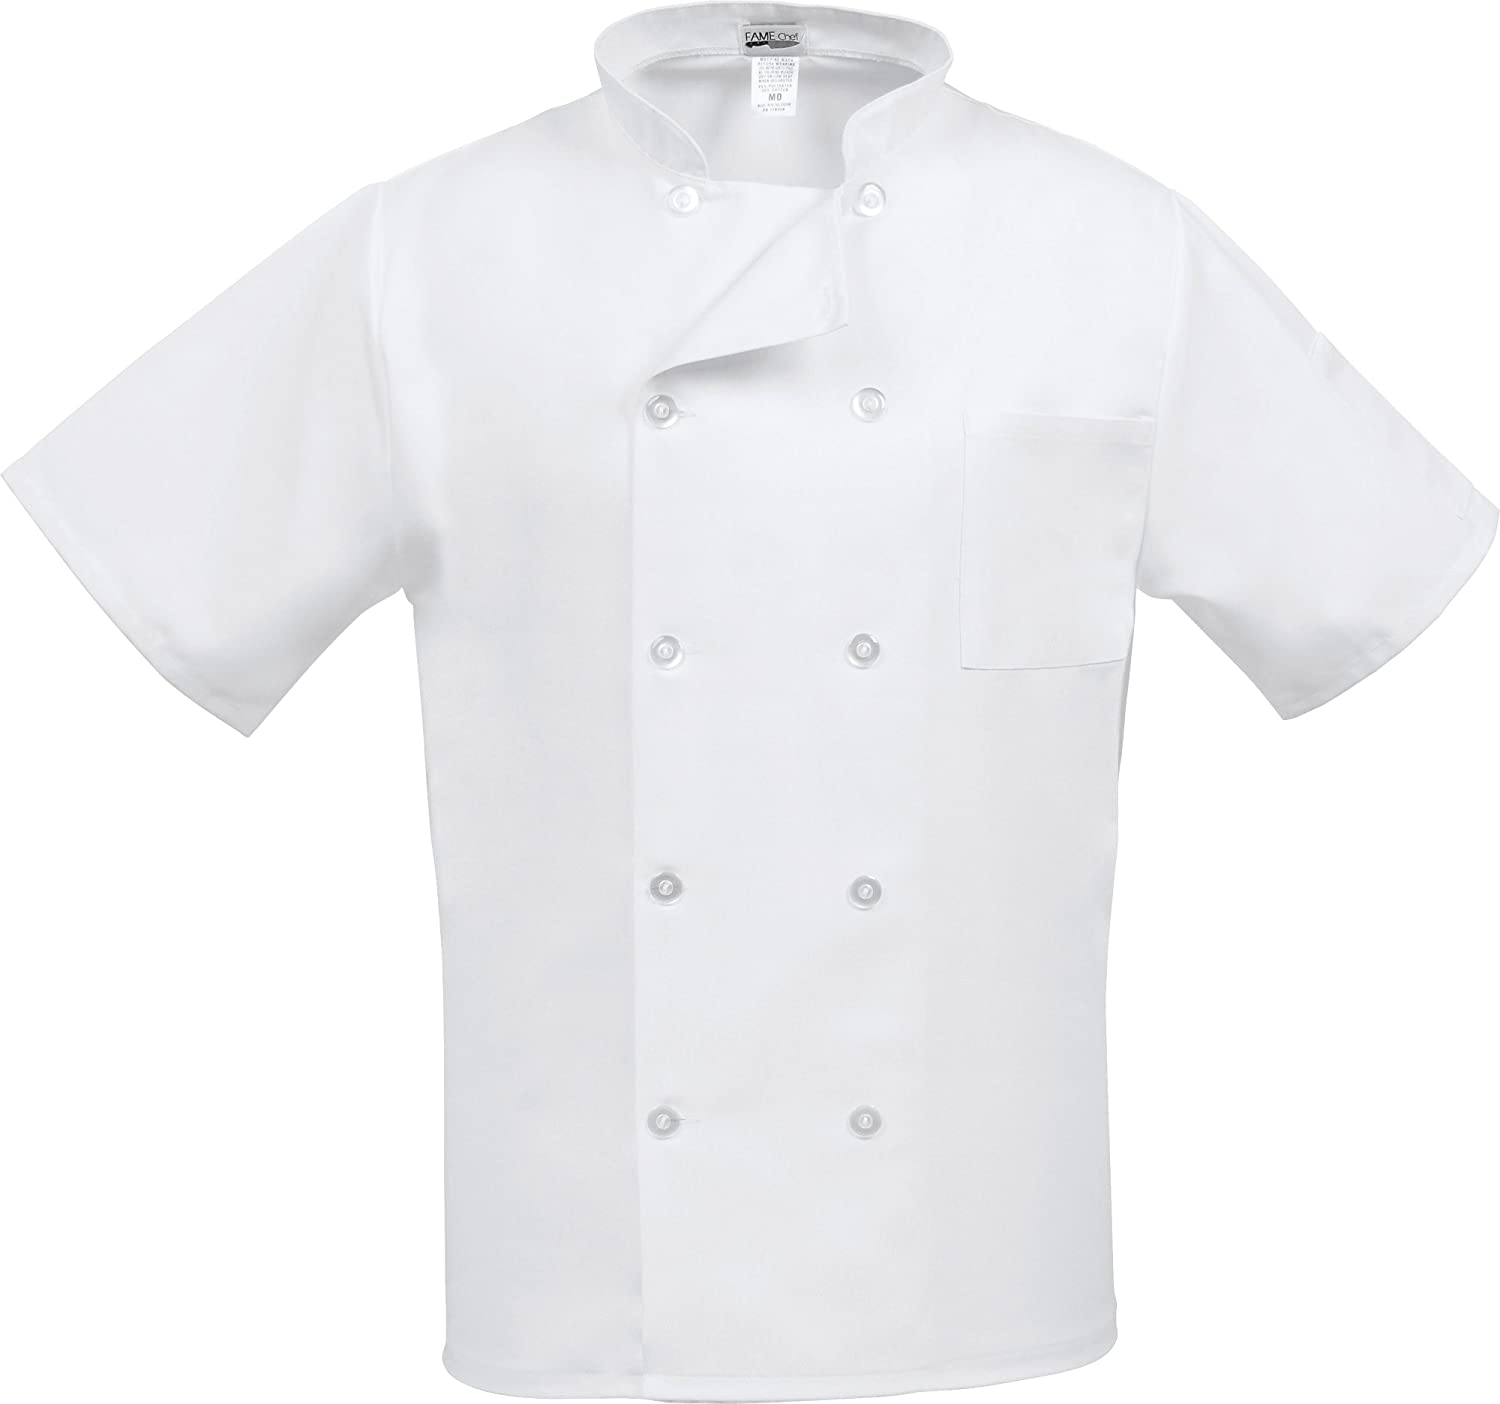 Fame Adult's Short Sleeve Chef coat 35